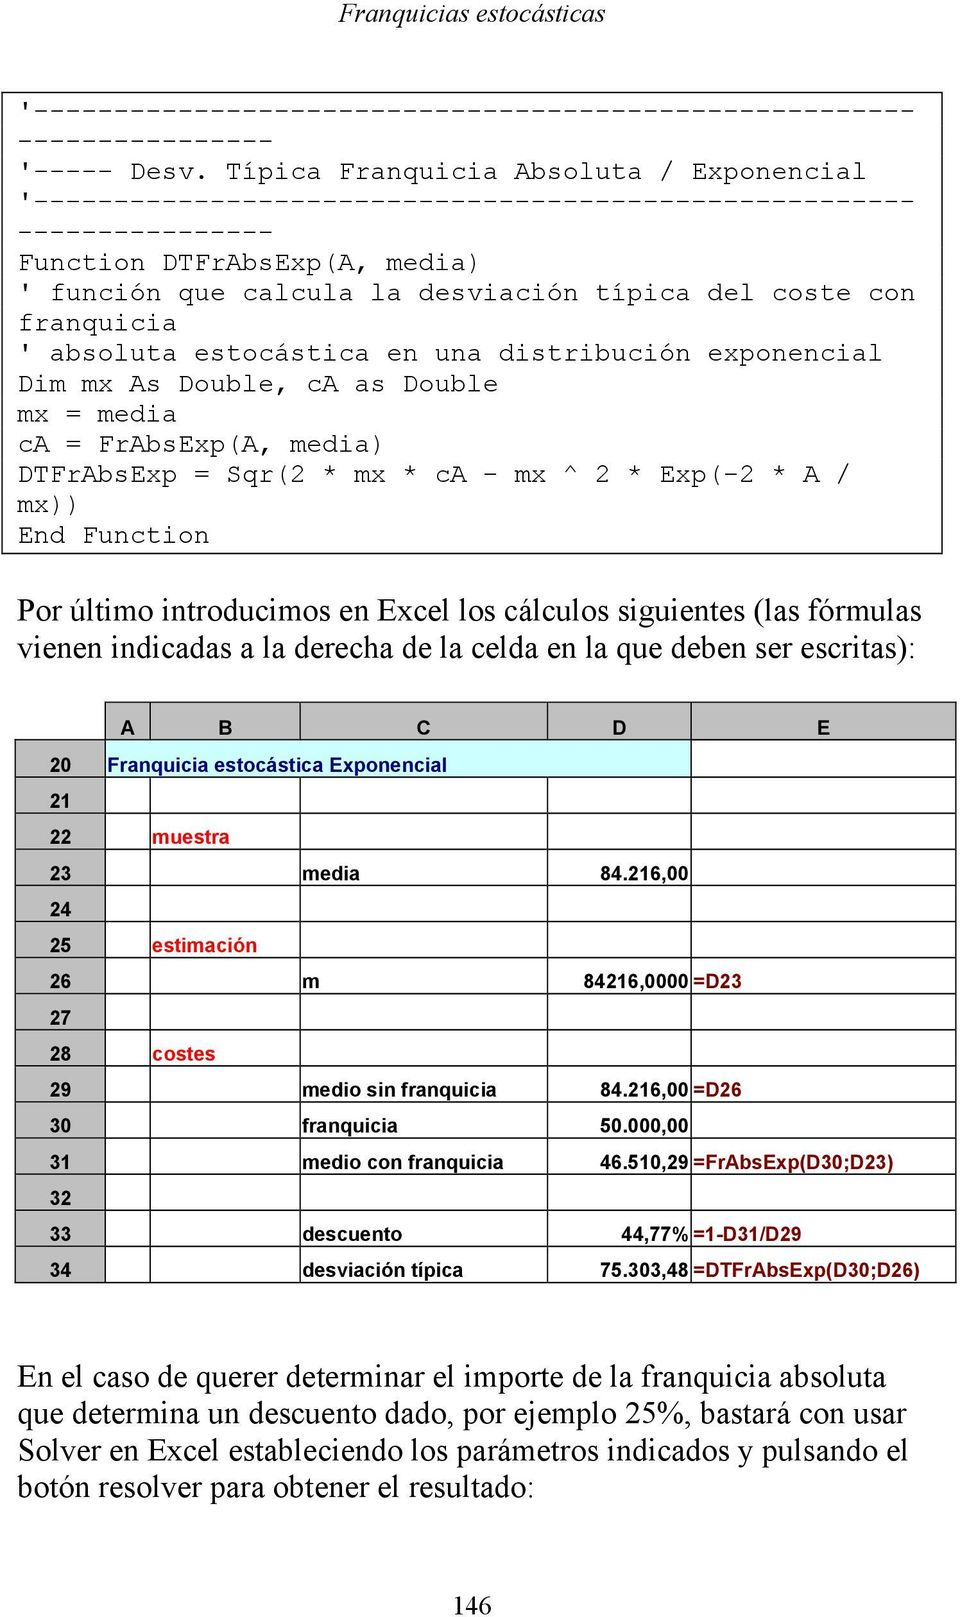 absoluta estoástia en una distribuión exponenial Dim mx s Double, as Double mx = media = FrbsExp(, media) DTFrbsExp = Sqr( * mx * - mx ^ * Exp(- * / mx)) End Funtion Por último introduimos en Exel